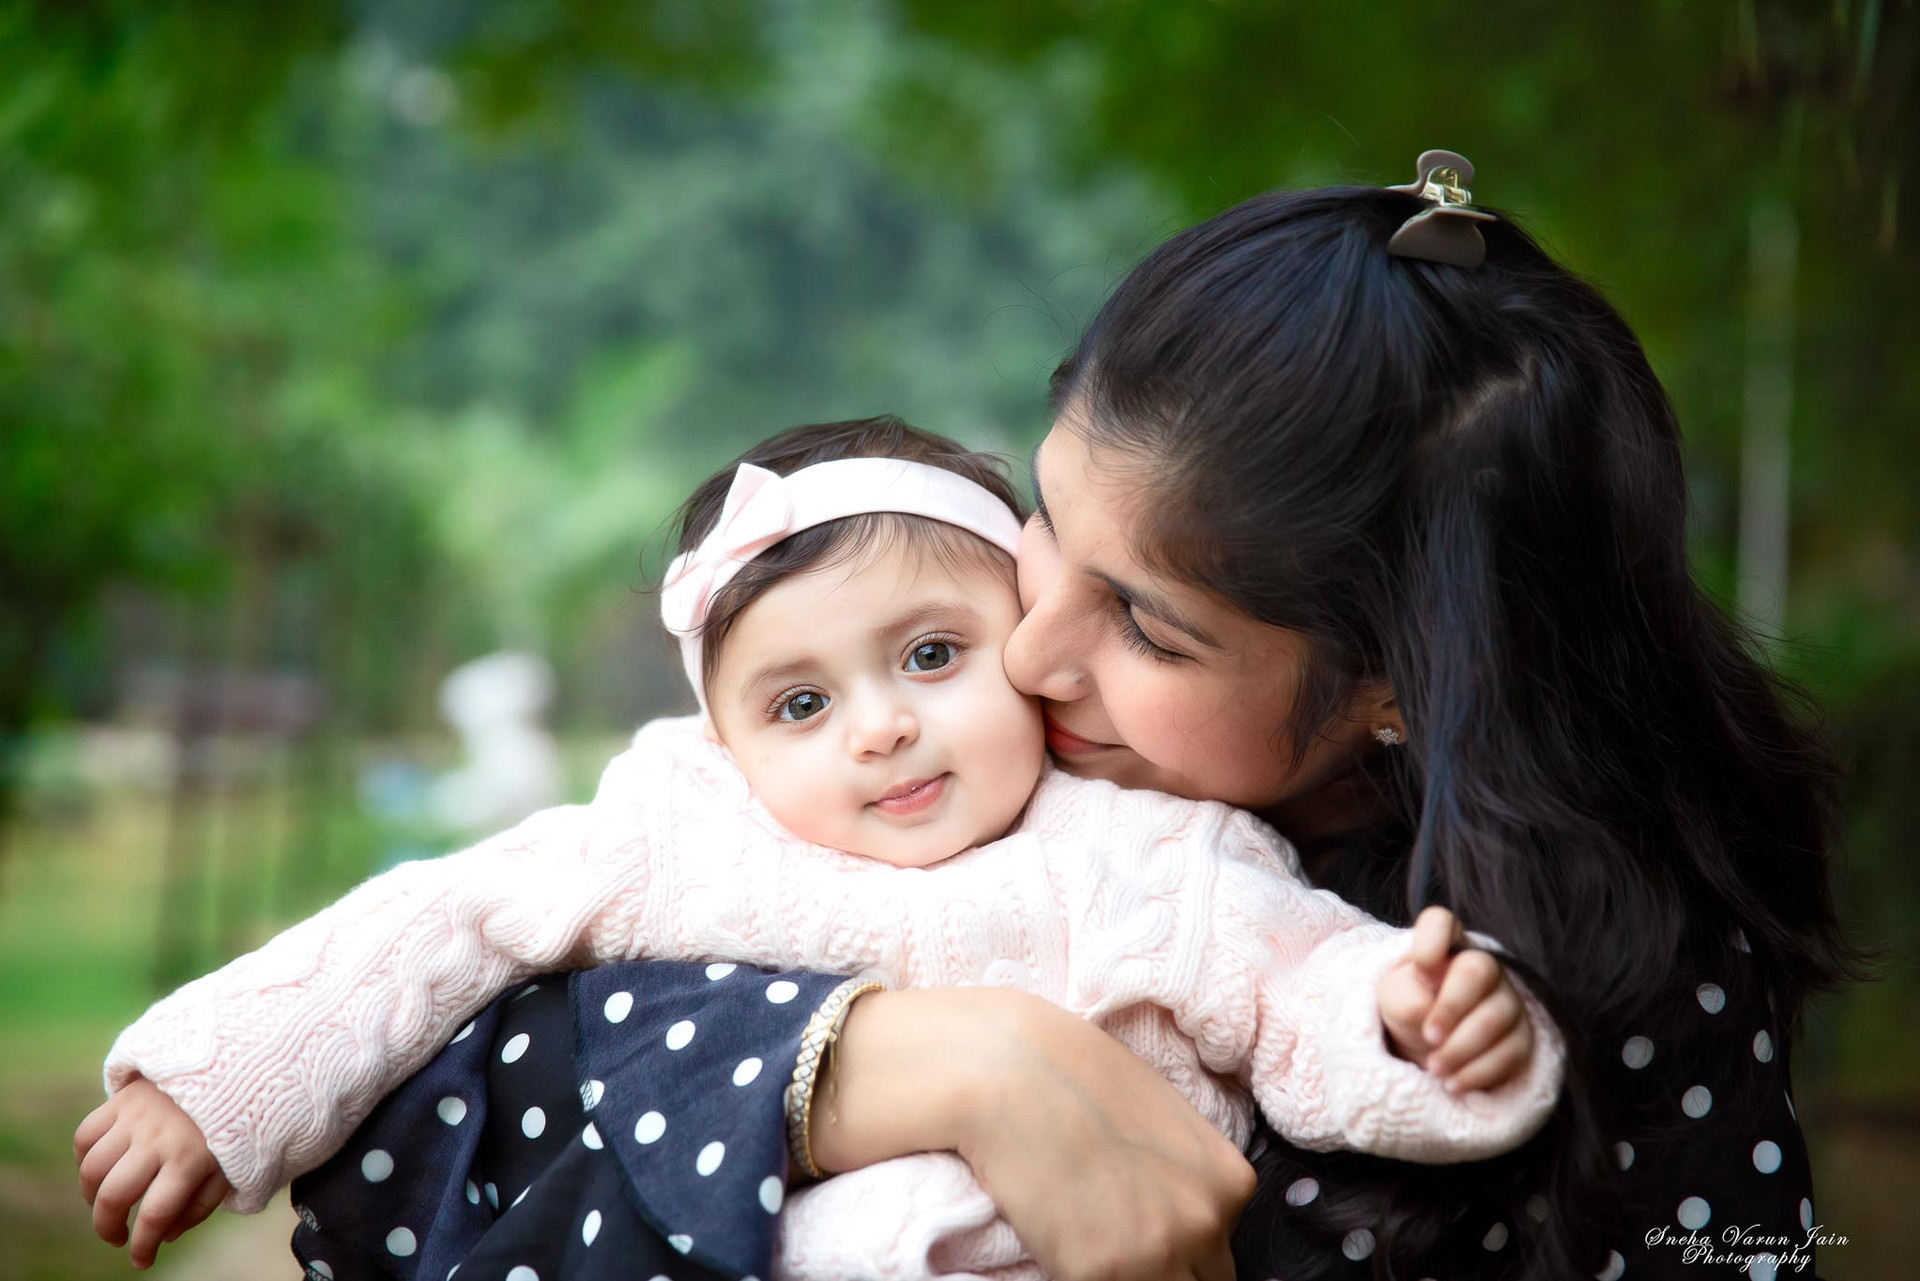 infant seven month baby photography chennai girl mother kiss love happy closeup